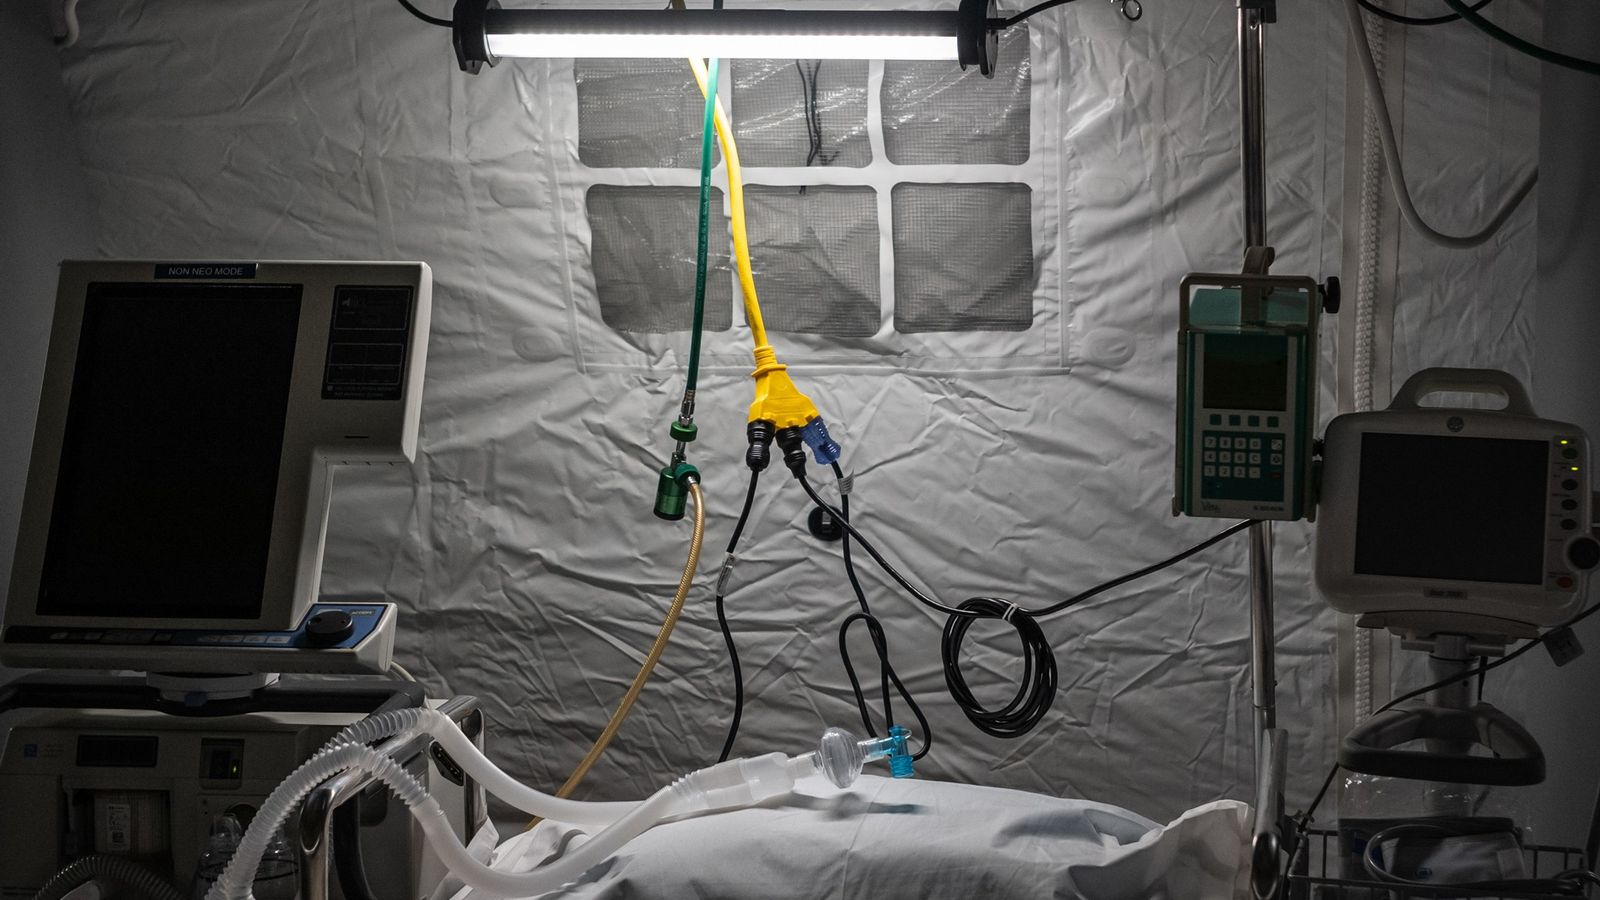 With its hospitals overwhelmed by COVID-19 cases, New York City is relying on makeshift intensive care ...